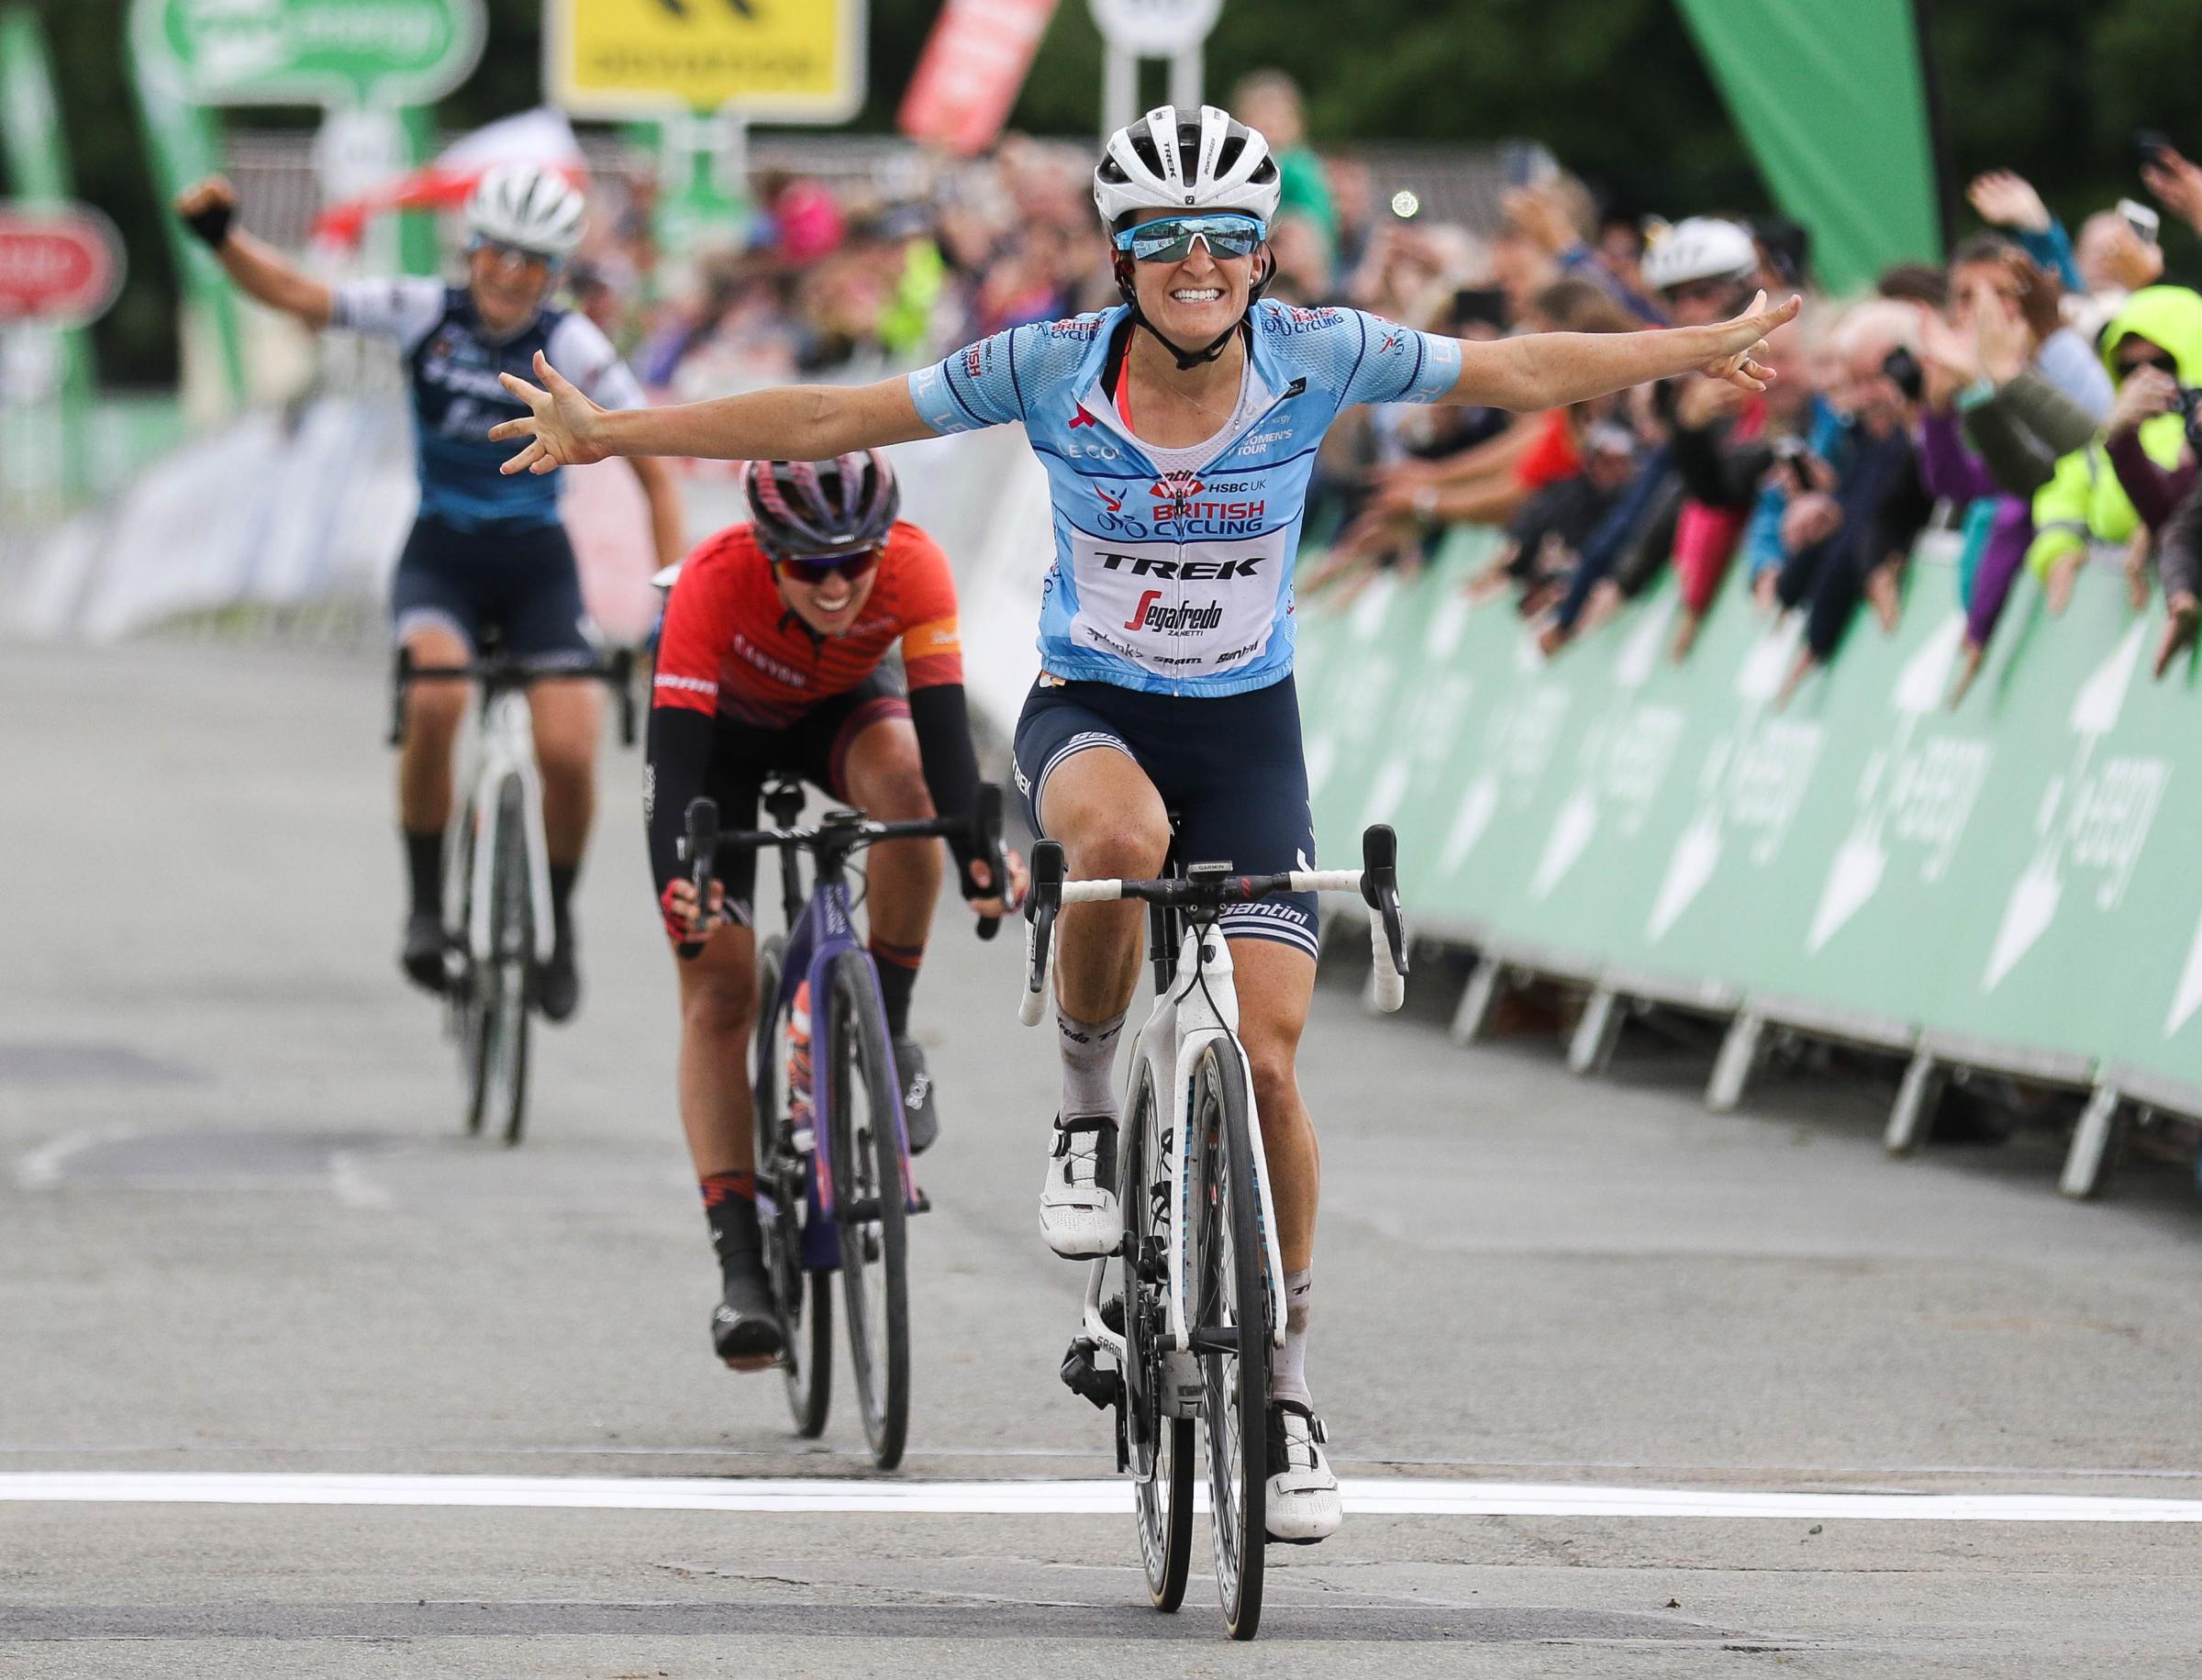 OVO Energy Women's Tour 2019: British rider claims stage 5 victory at Royal Welsh Showground